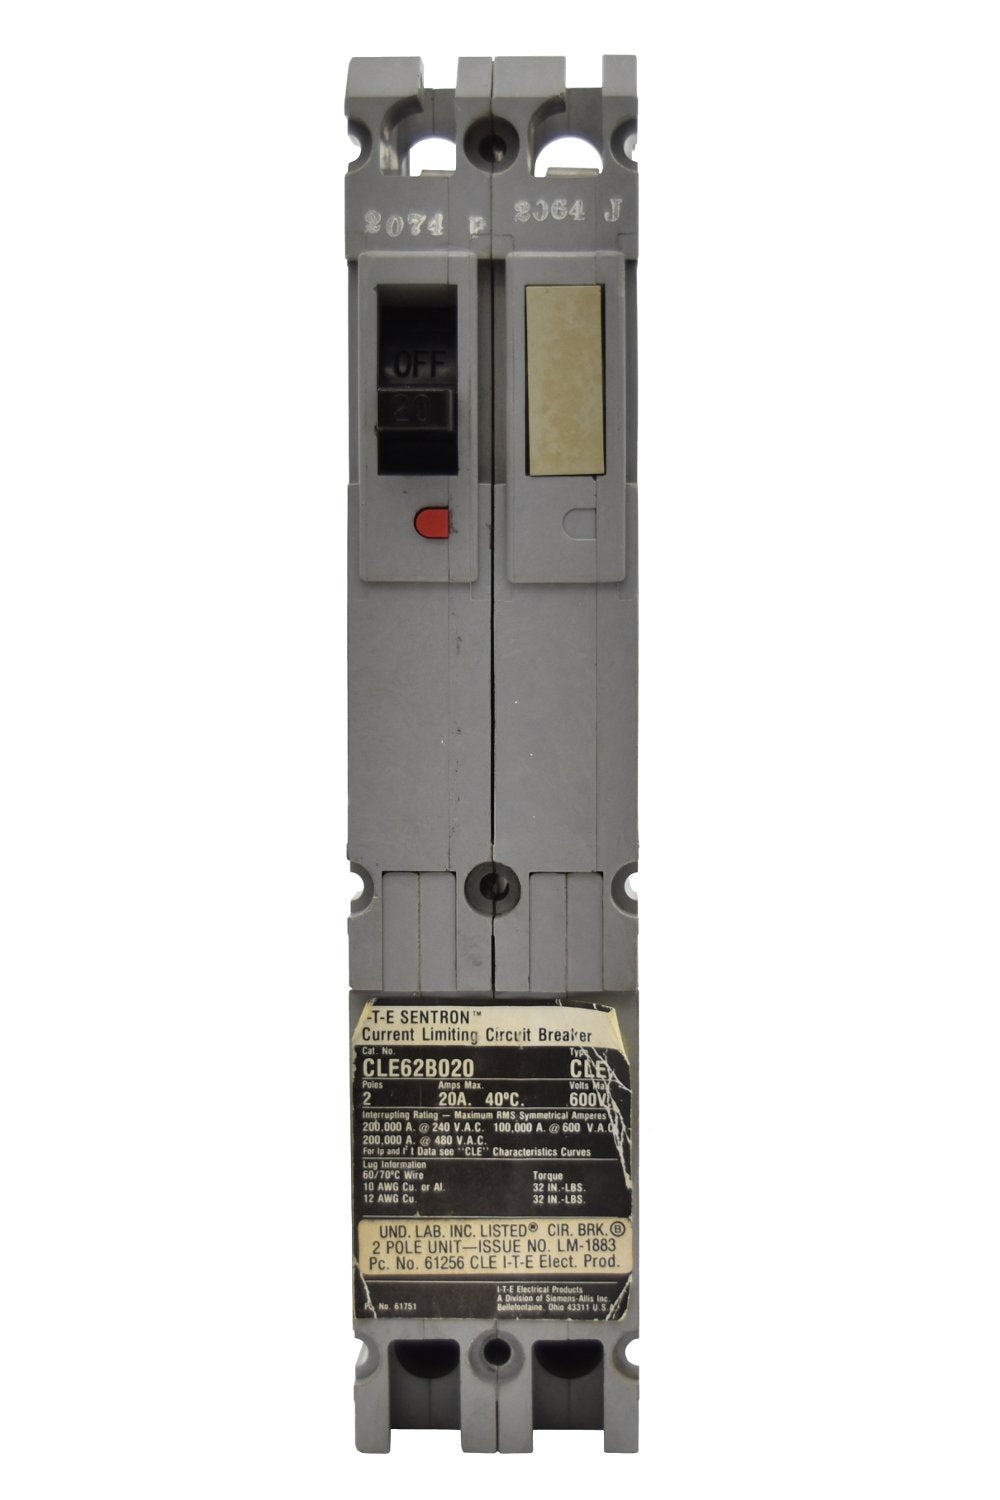 Siemens CLE62B100 Circuit Breakers